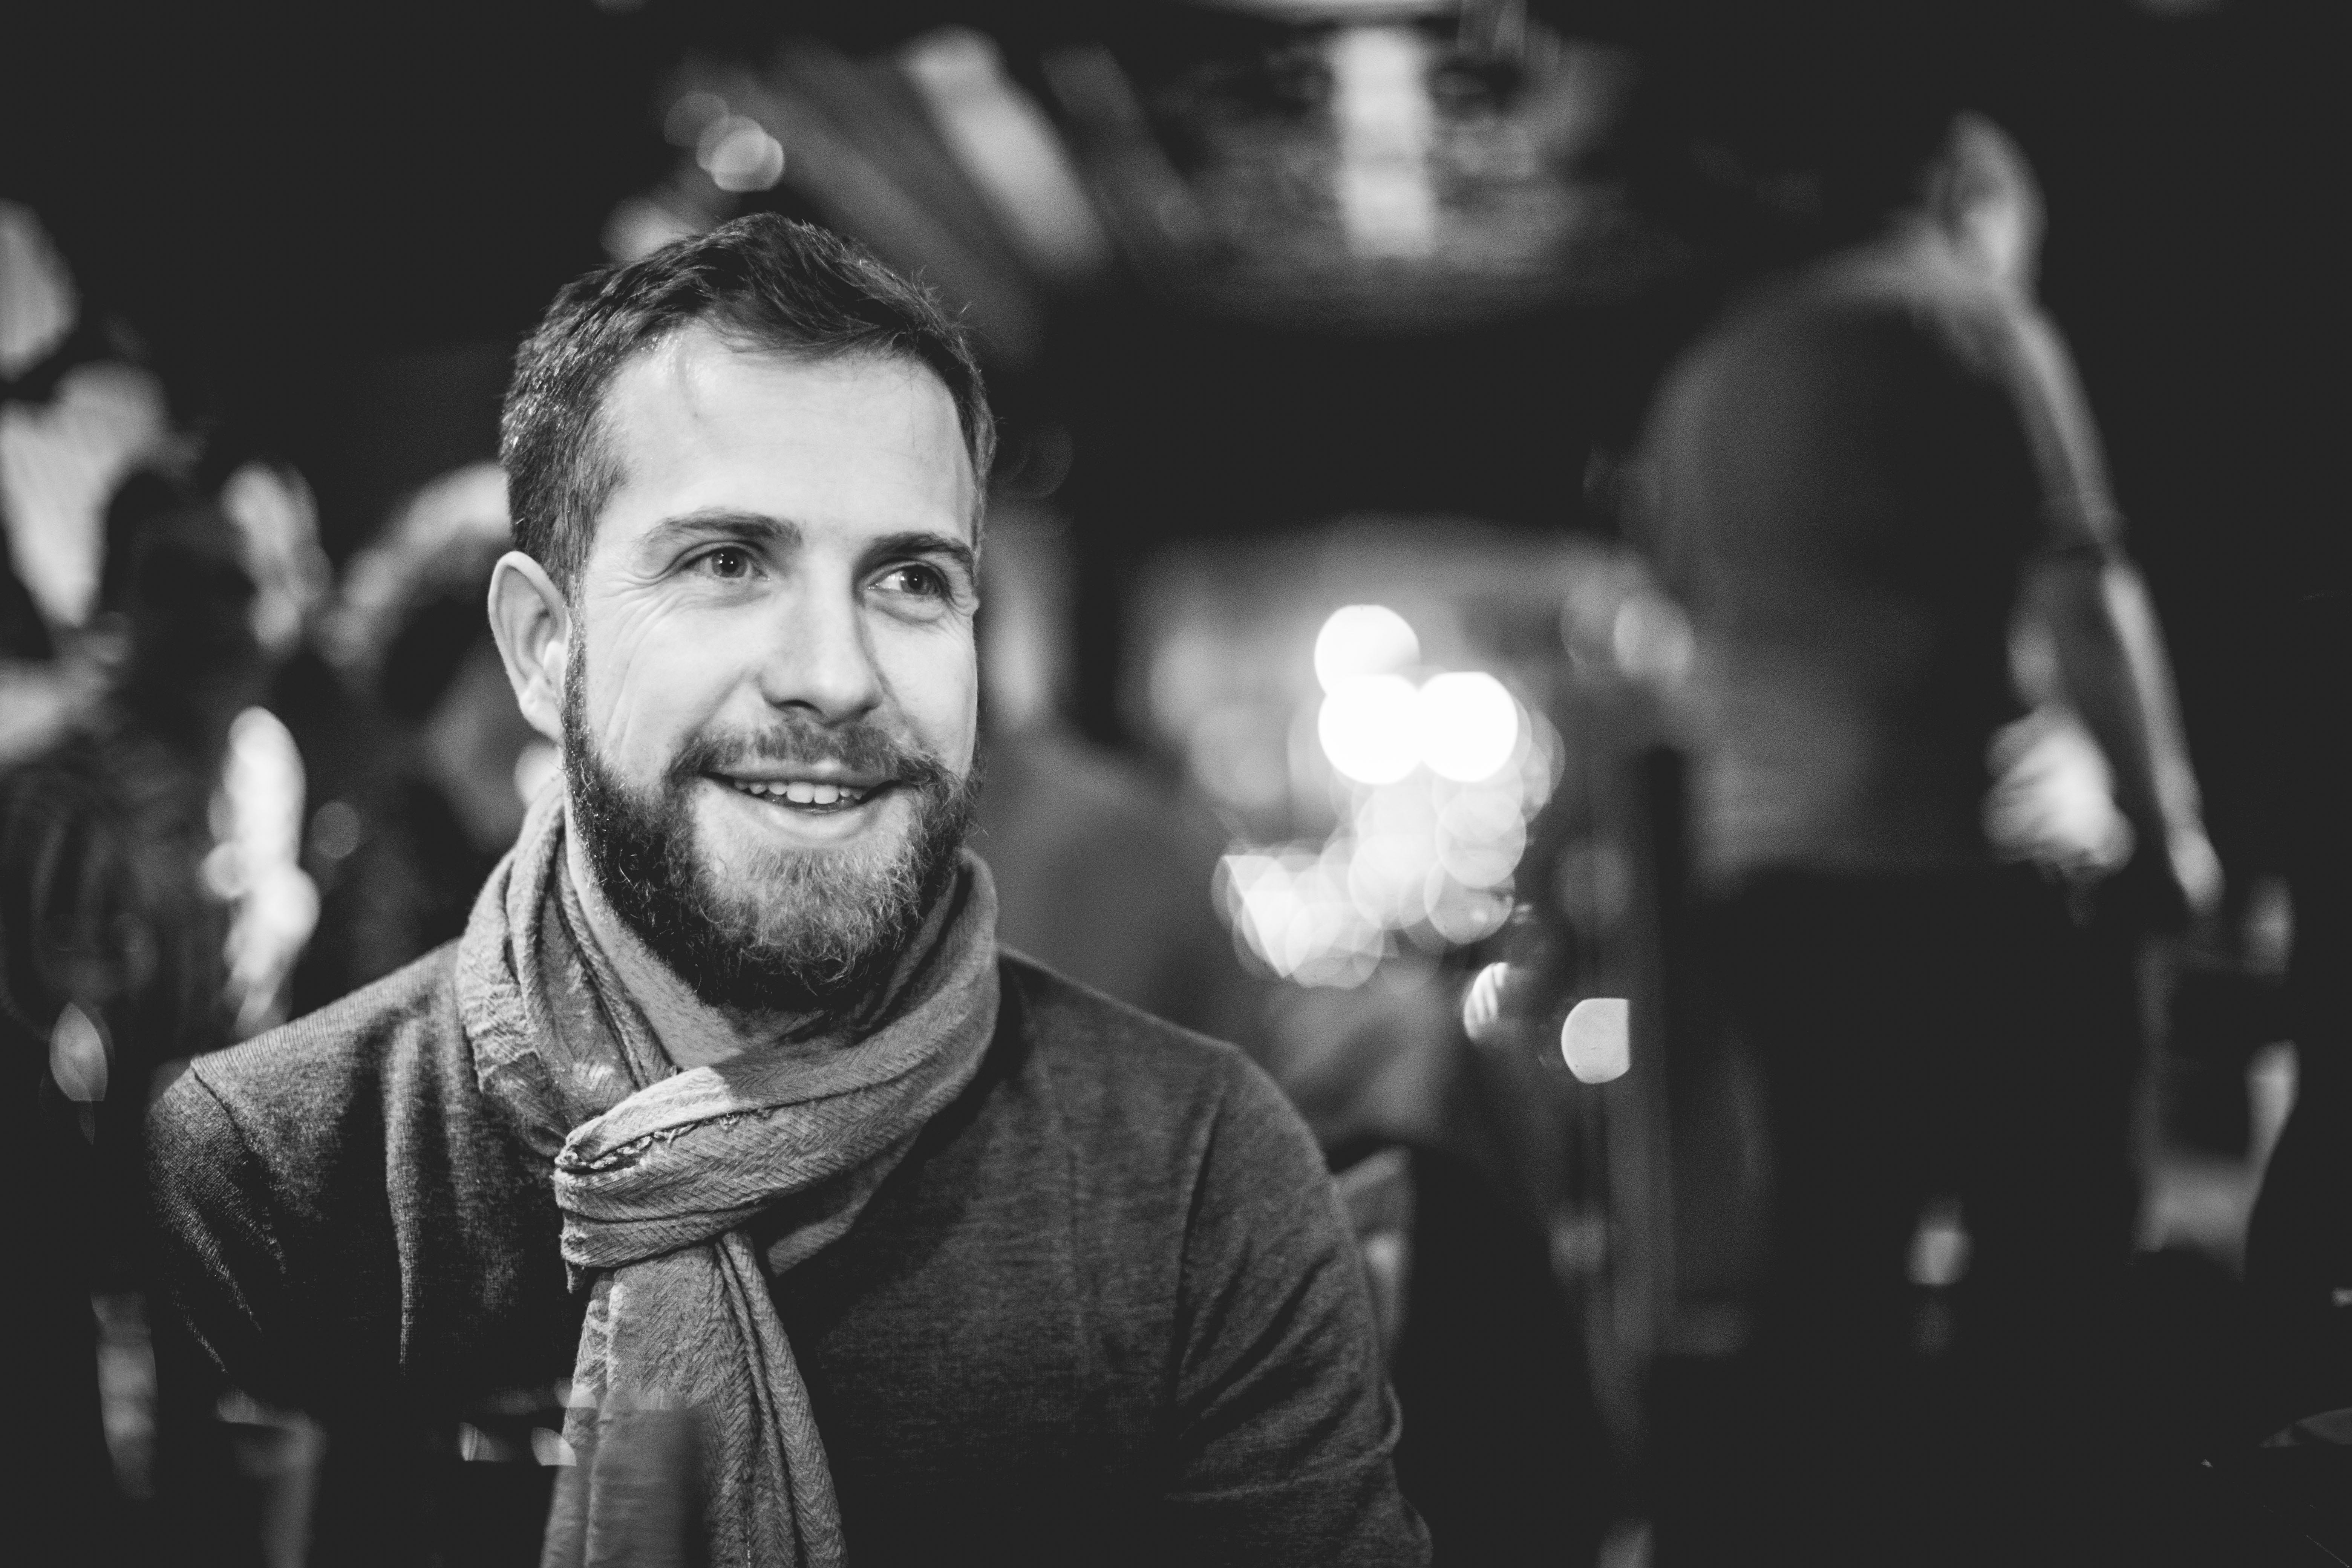 grayscale photography of man with scarf